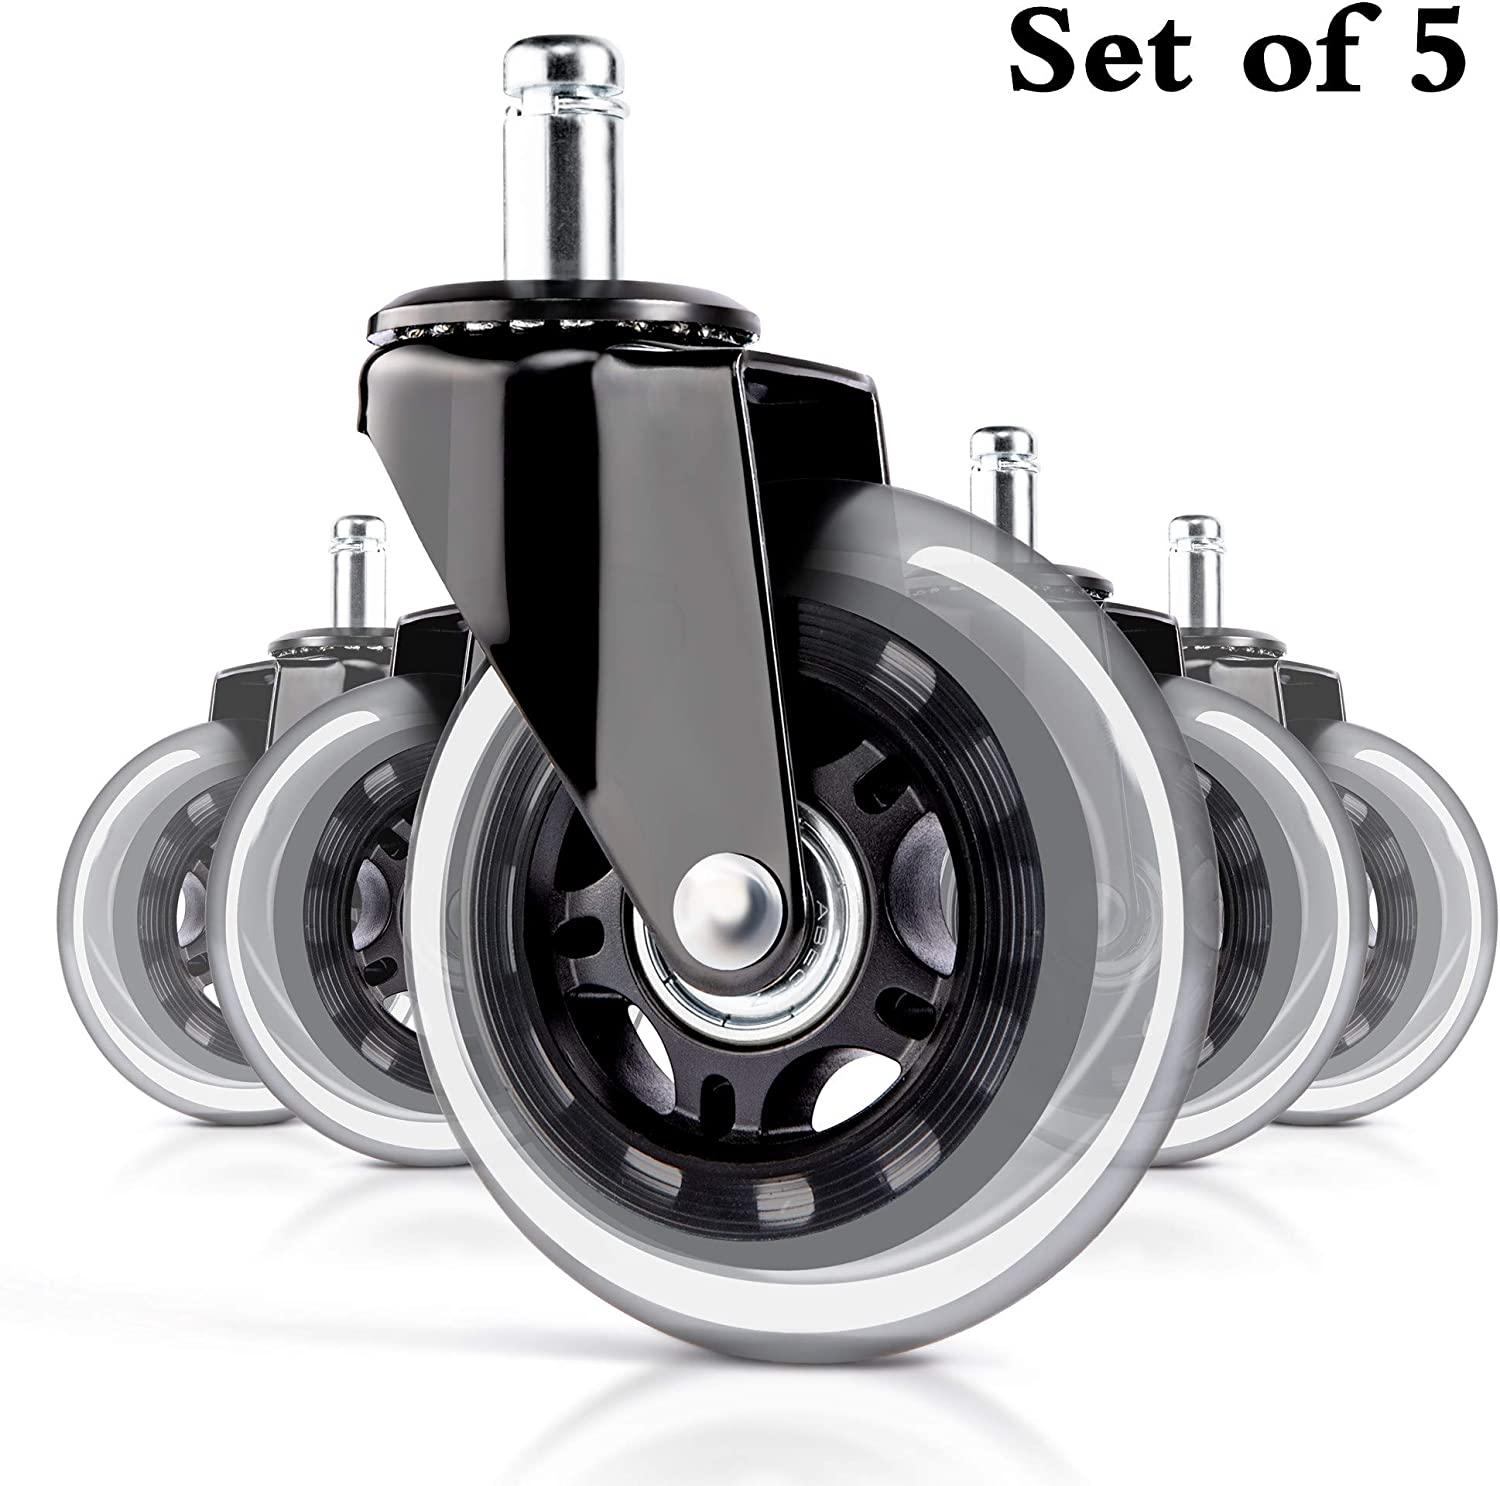 Office Chair Casters Wheels Set of 5 Replacement Rubber Chair Casters for Hardwood Floors and Carpet,Protect Your Floor - Quick & Quiet Rolling Over The Cables-Universal Fit